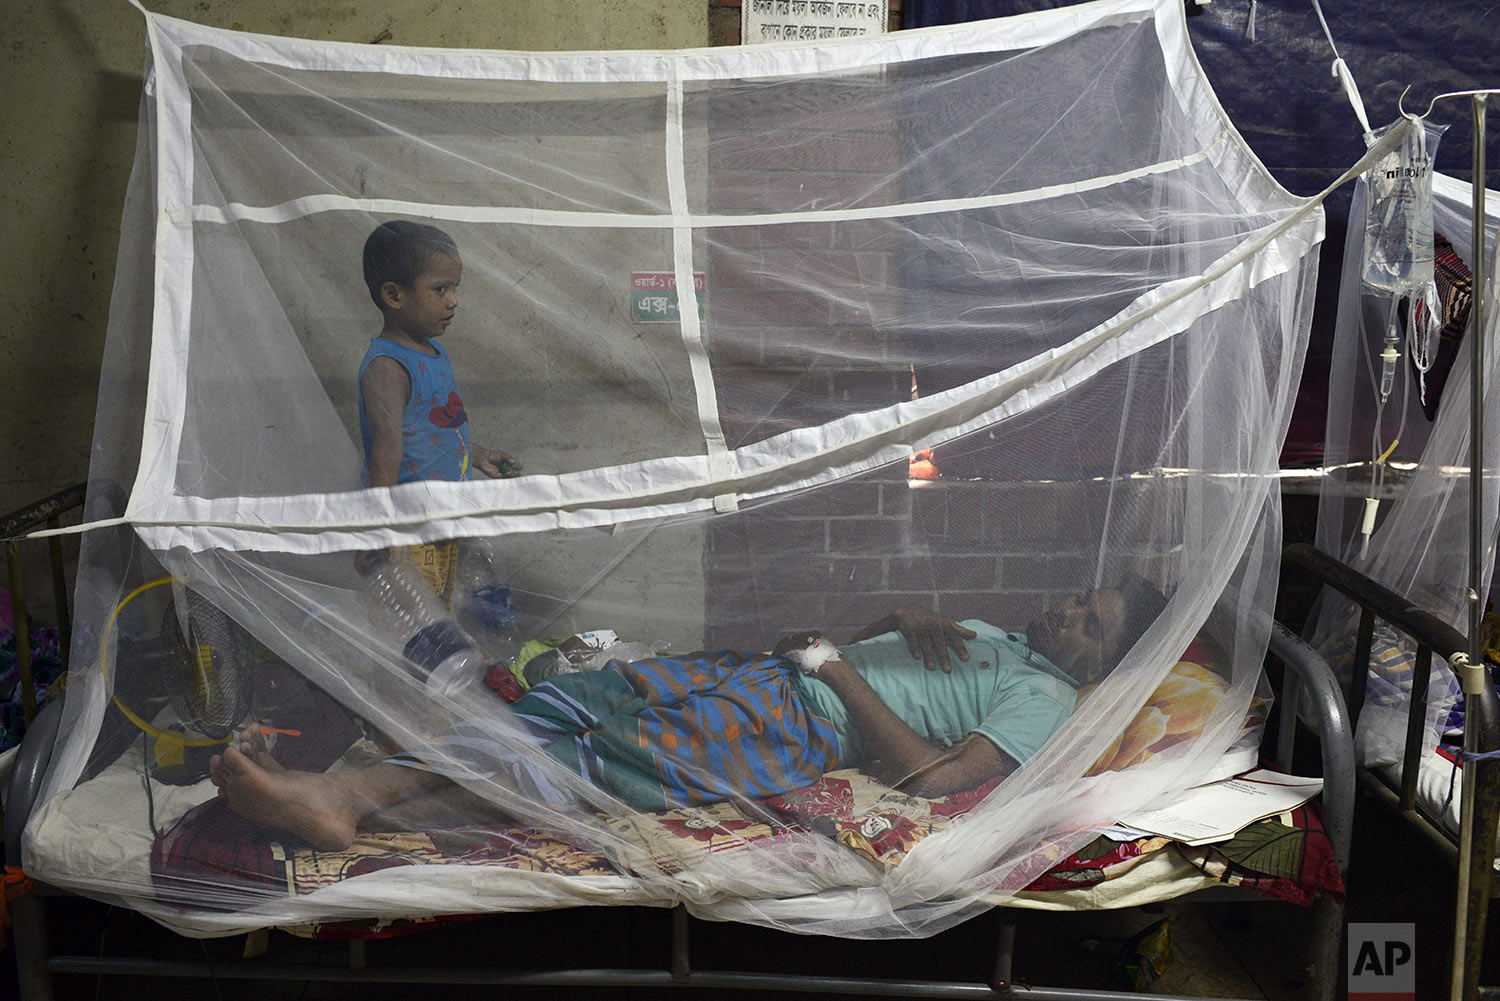 A man receives treatment for dengue, with his son standing beside him, at Shaheed Suhrawardy Medical College and Hospital in Dhaka, Bangladesh, Wednesday, July 31, 2019. (AP Photo/Mahmud Hossain Opu)